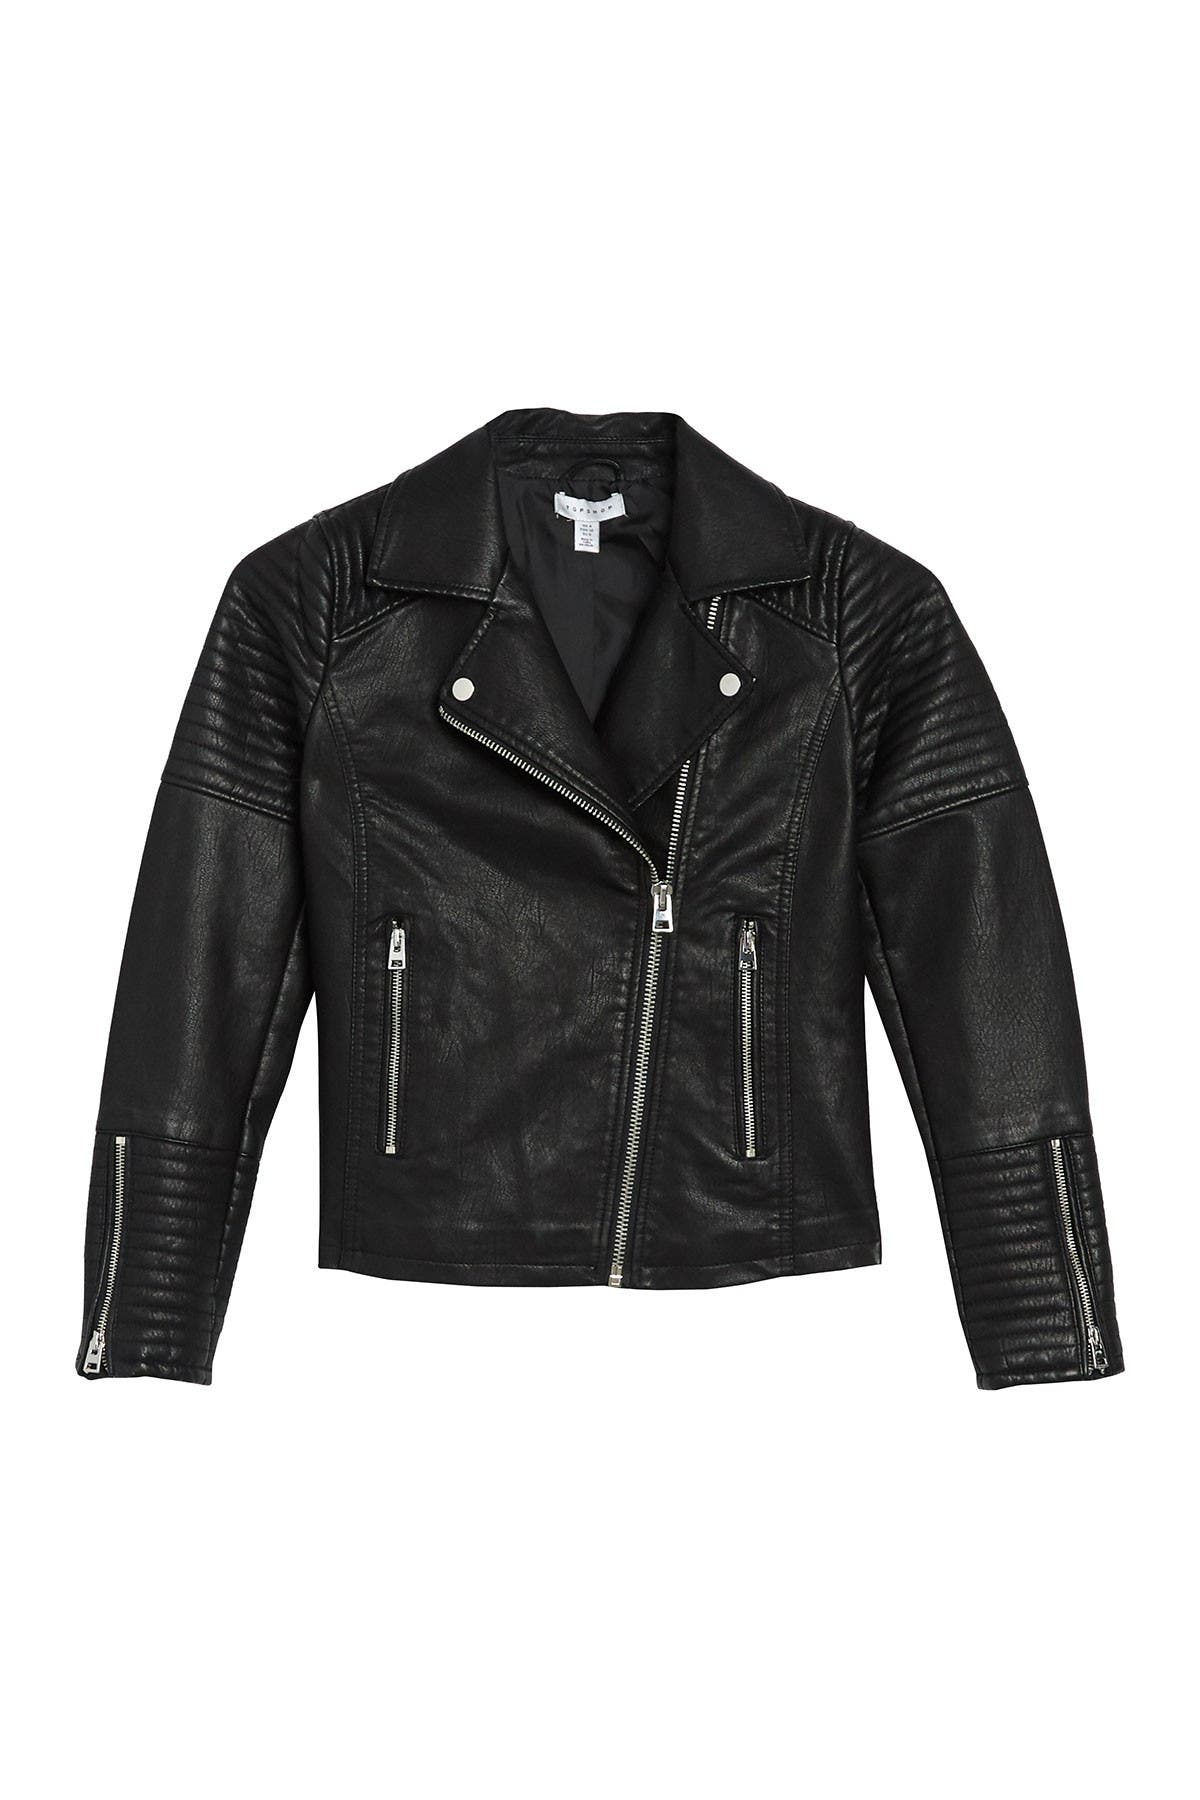 Image of TOPSHOP Rosa Faux Leather Biker Jacket